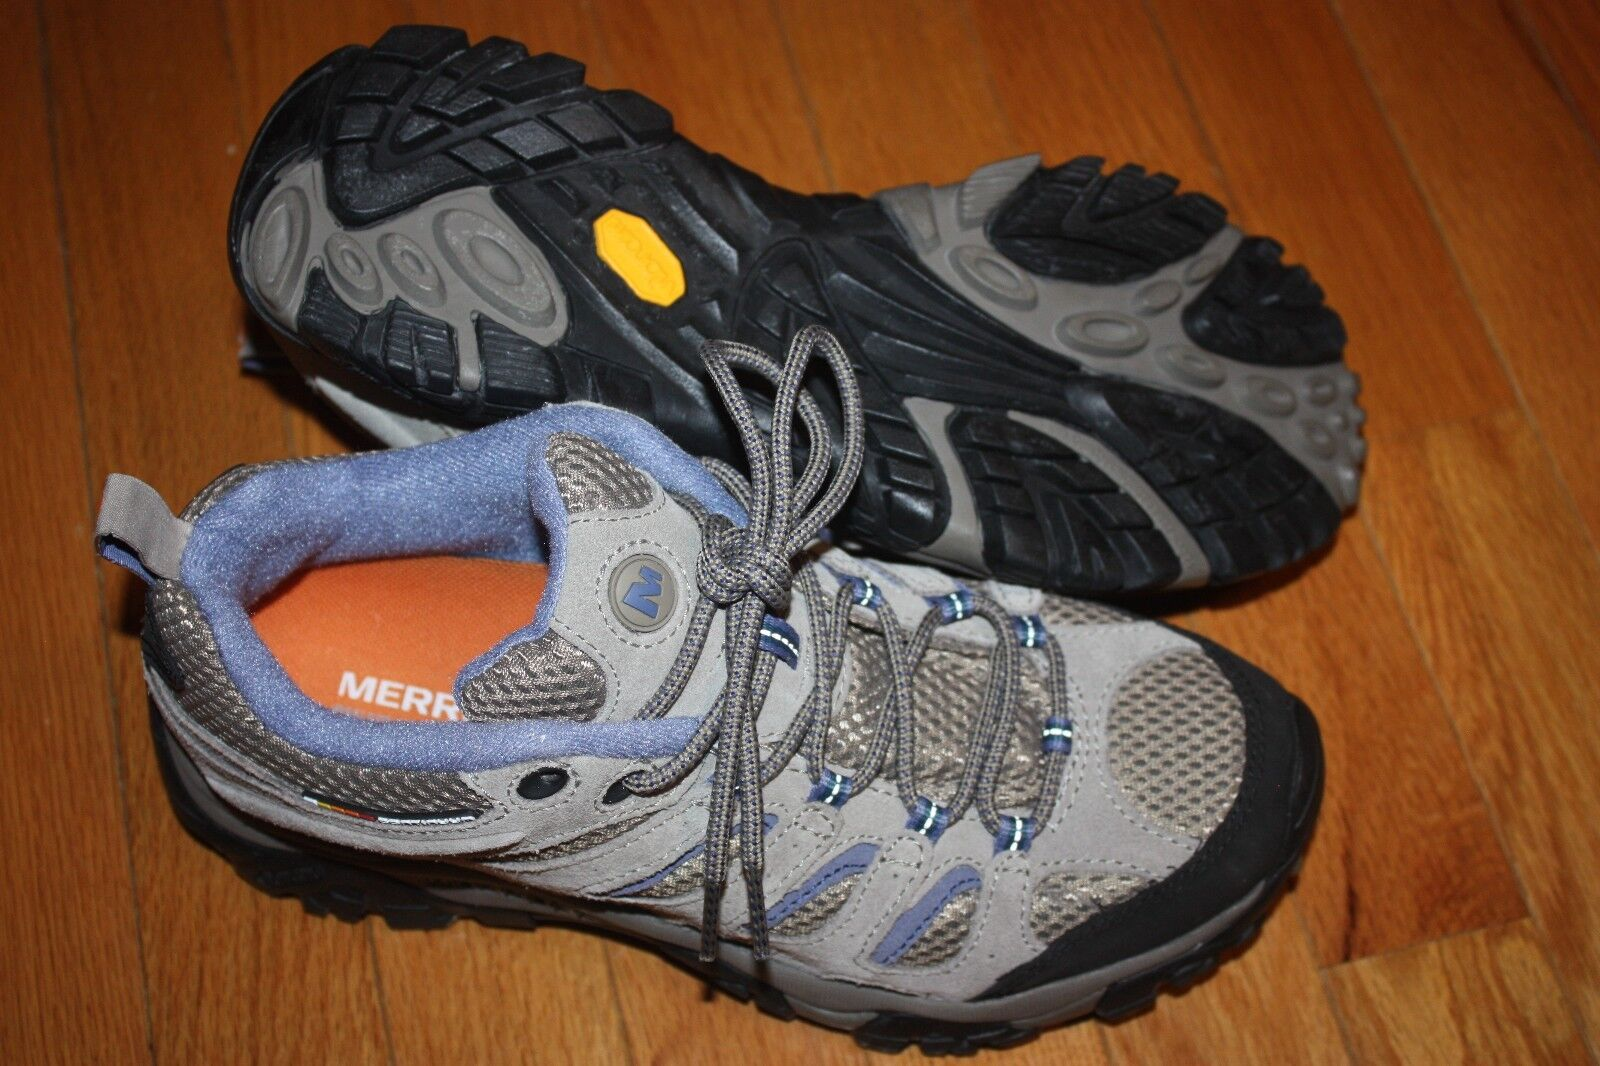 New In Box Merrell femmes  J57758 Moab Ventilator Hiking  Chaussures  SHIP FEE US FAST